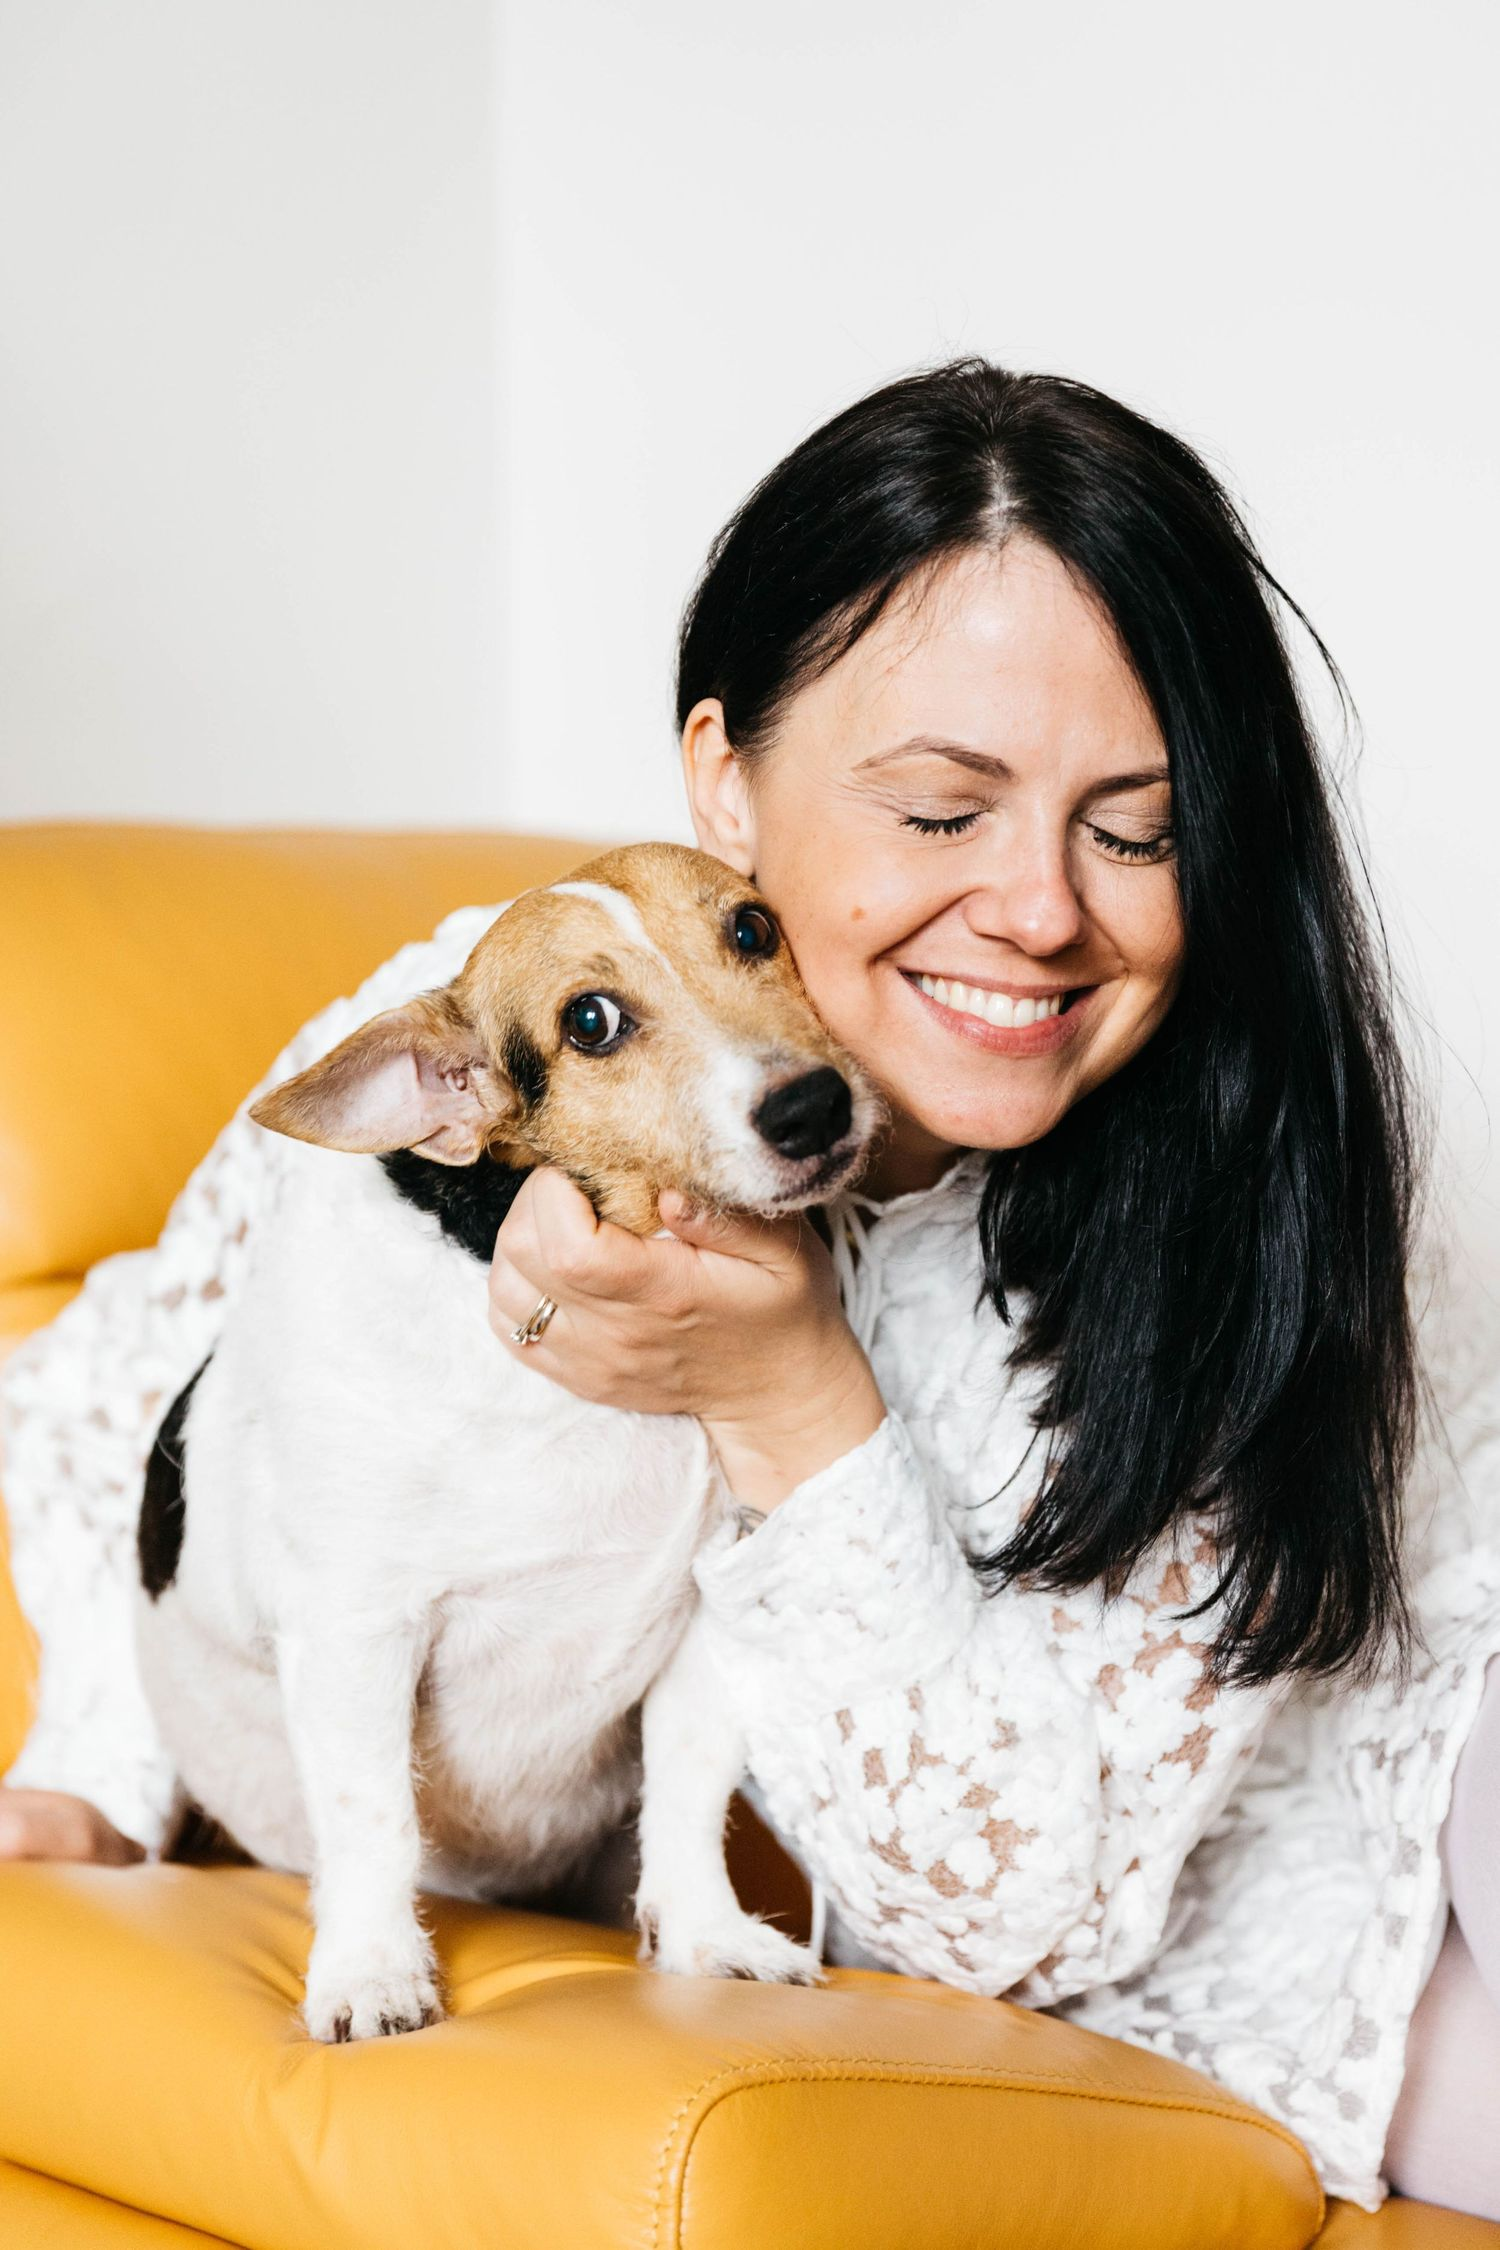 woman with dark hair in white dress cuddling white brown dog